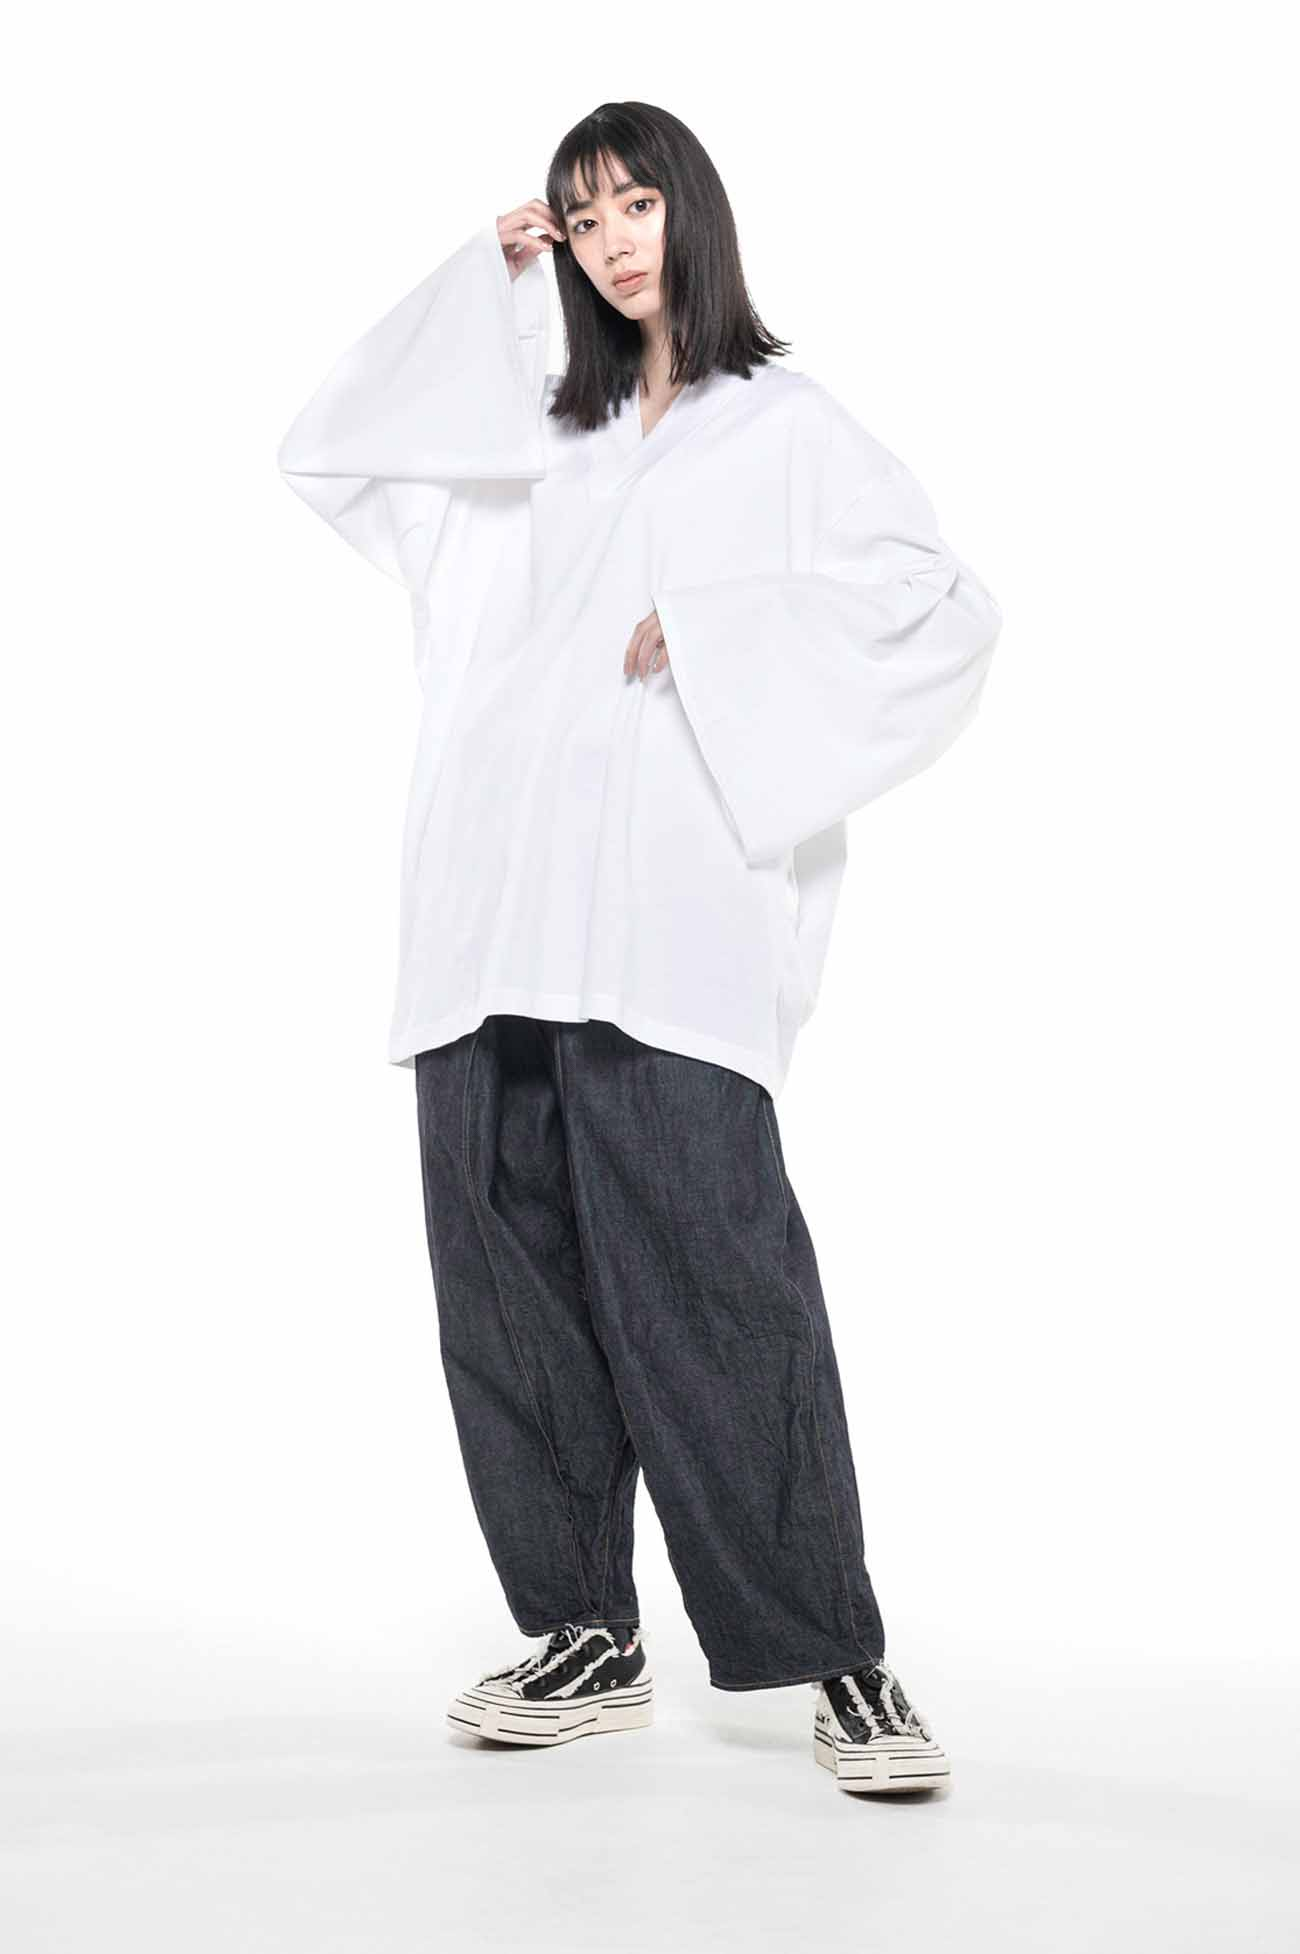 40/2 Cotton Jersey Kimono Layered Vneck 6part Length Sleeve Pullover